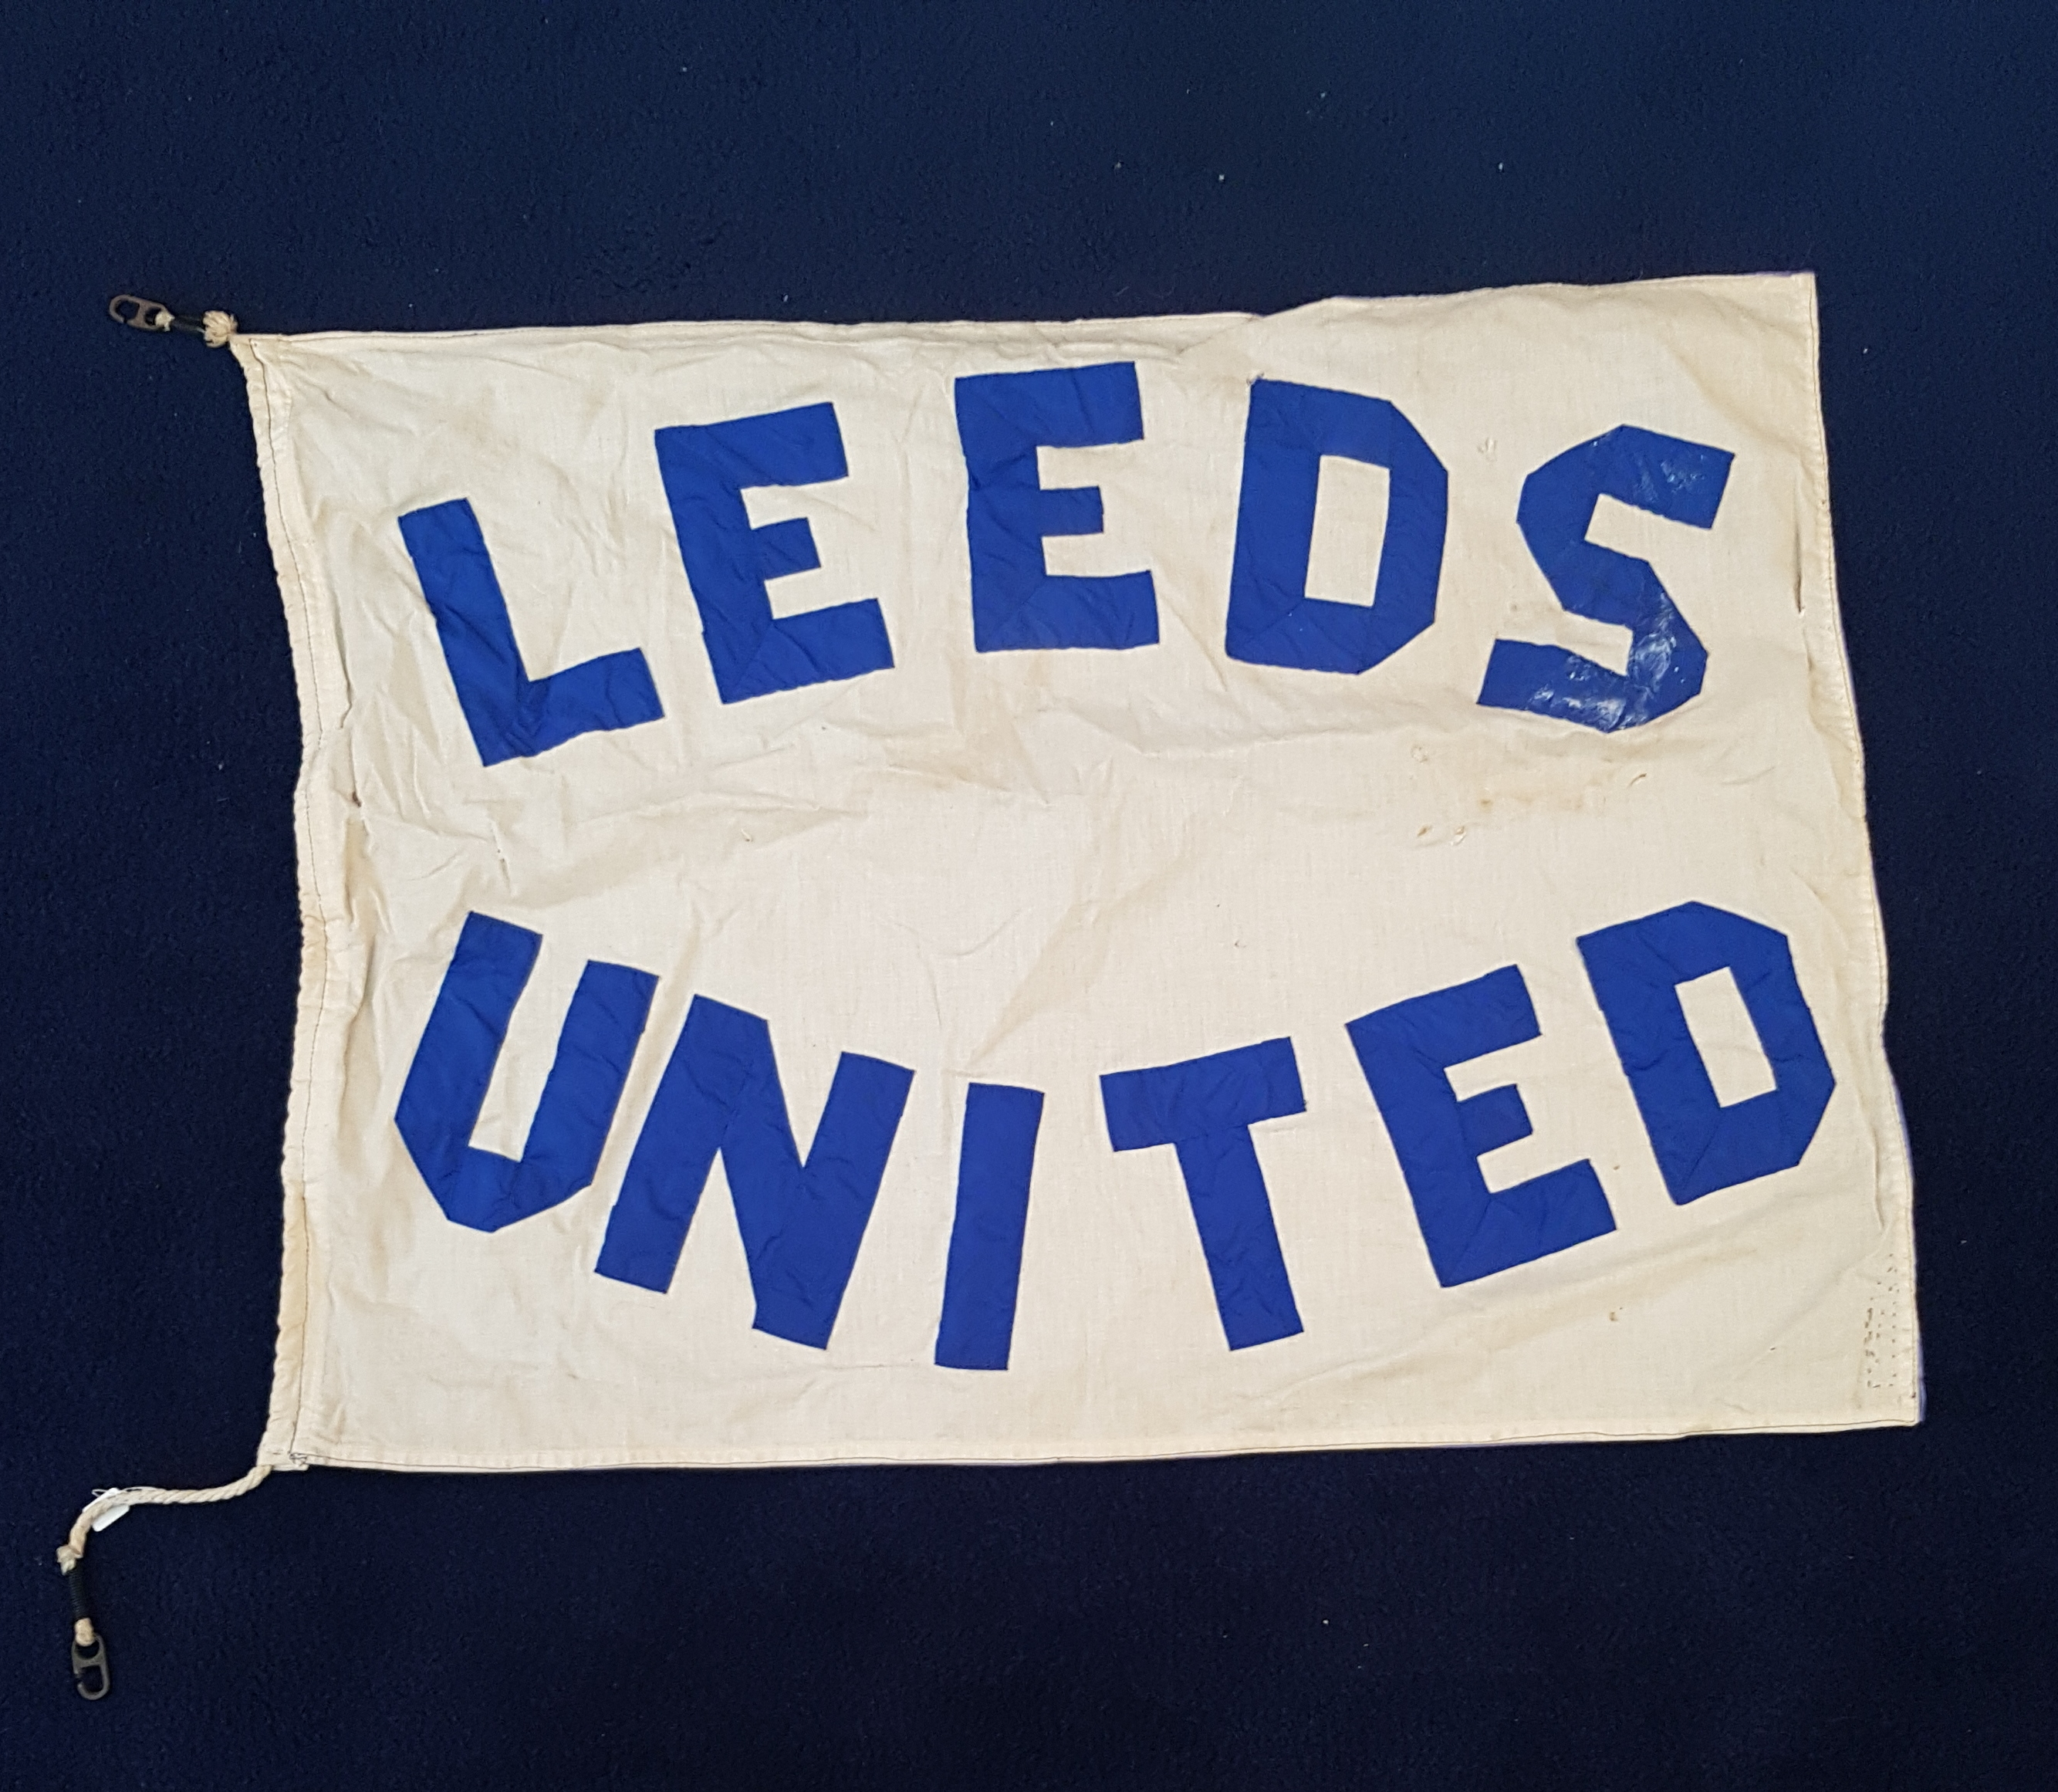 White flag with blue lettering that says 'Leeds United'